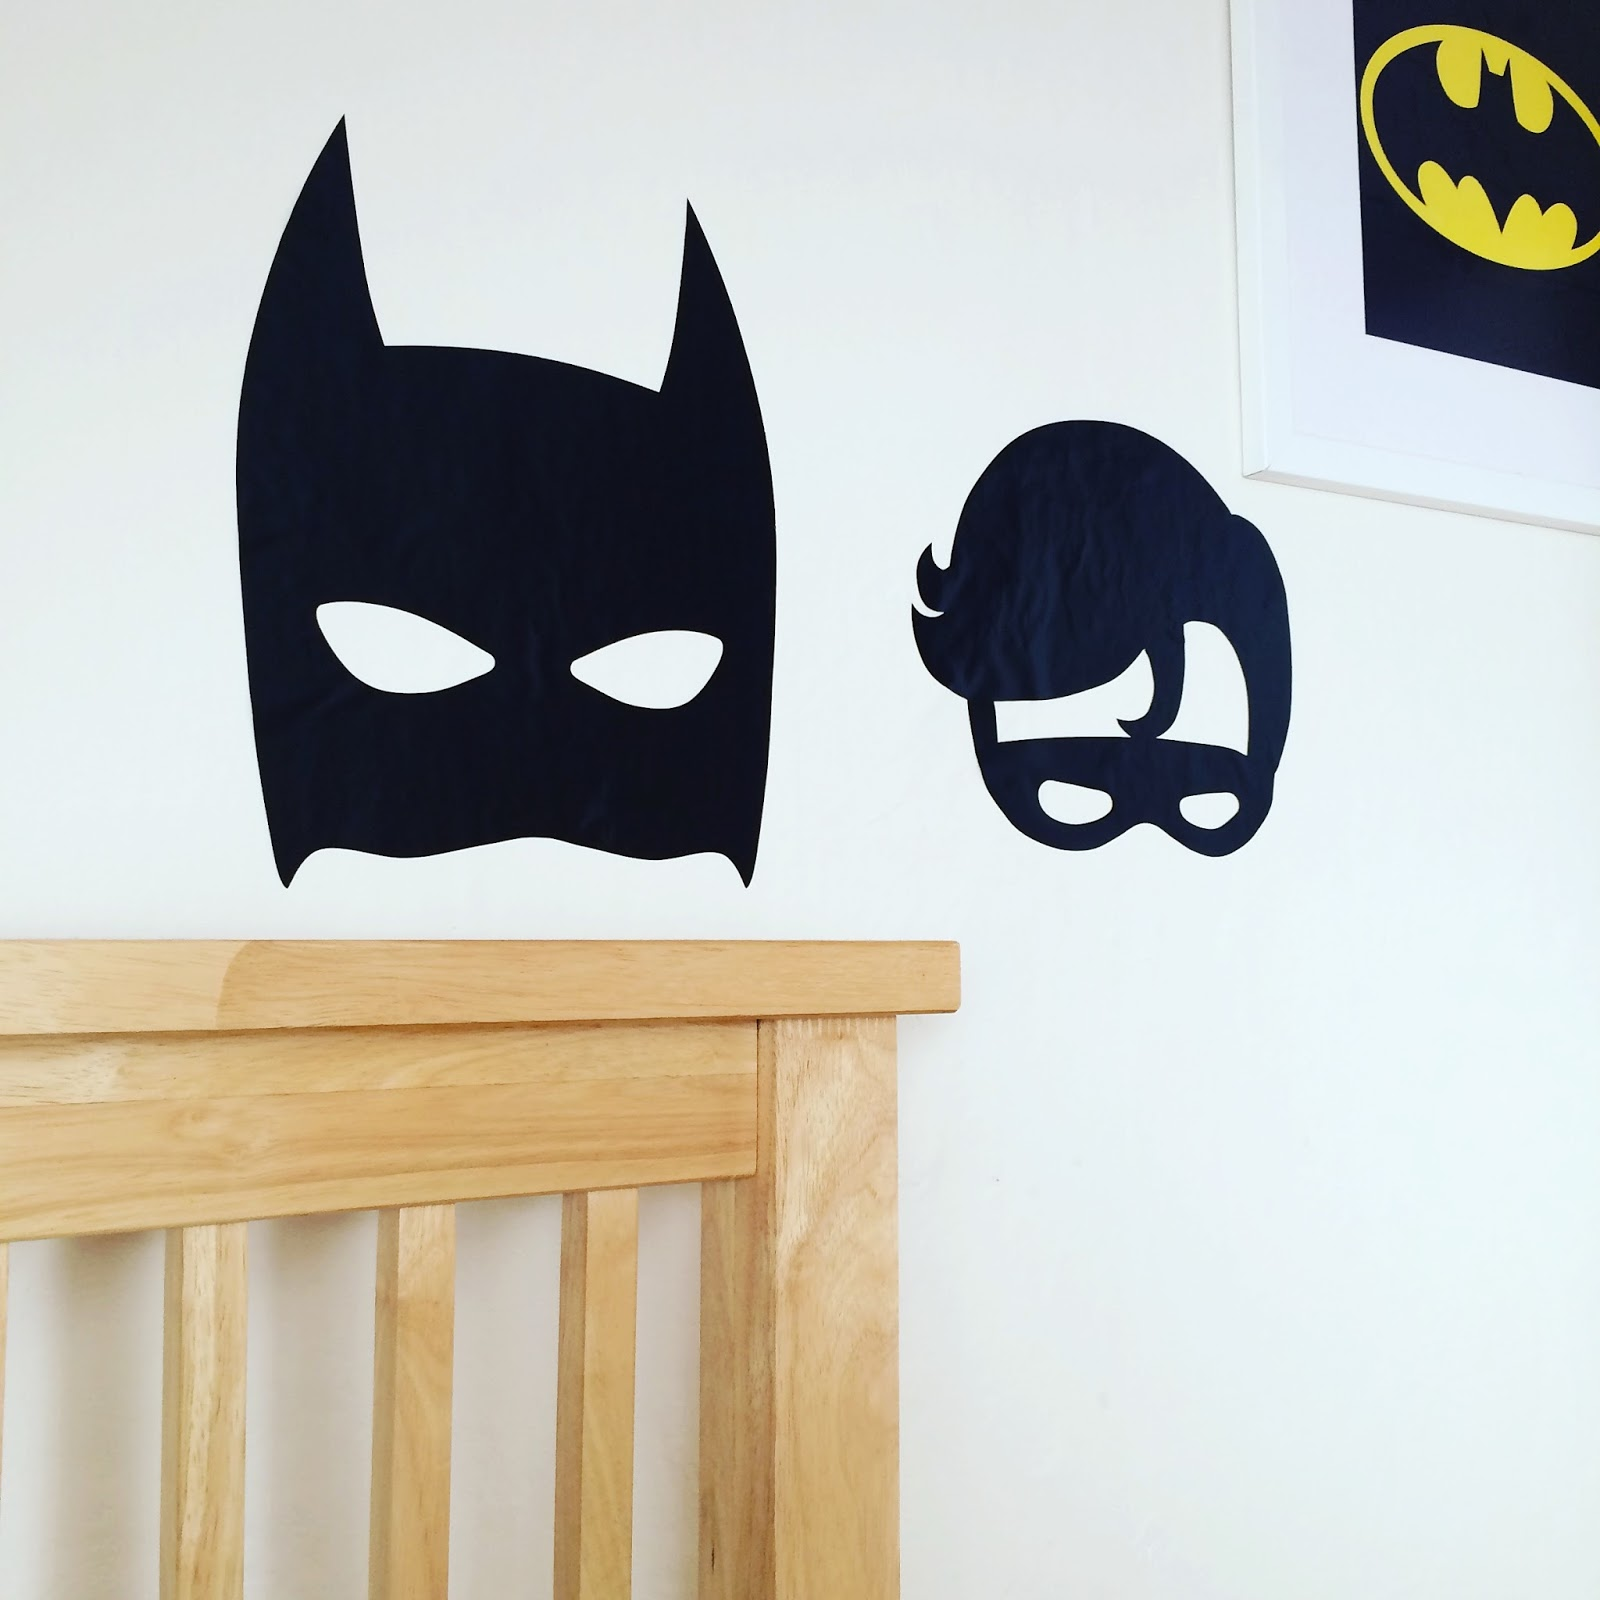 Decal folk wall decals are made with a specialist interior vinyl that is made to be long lasting but easy to remove they can be applied to most smooth